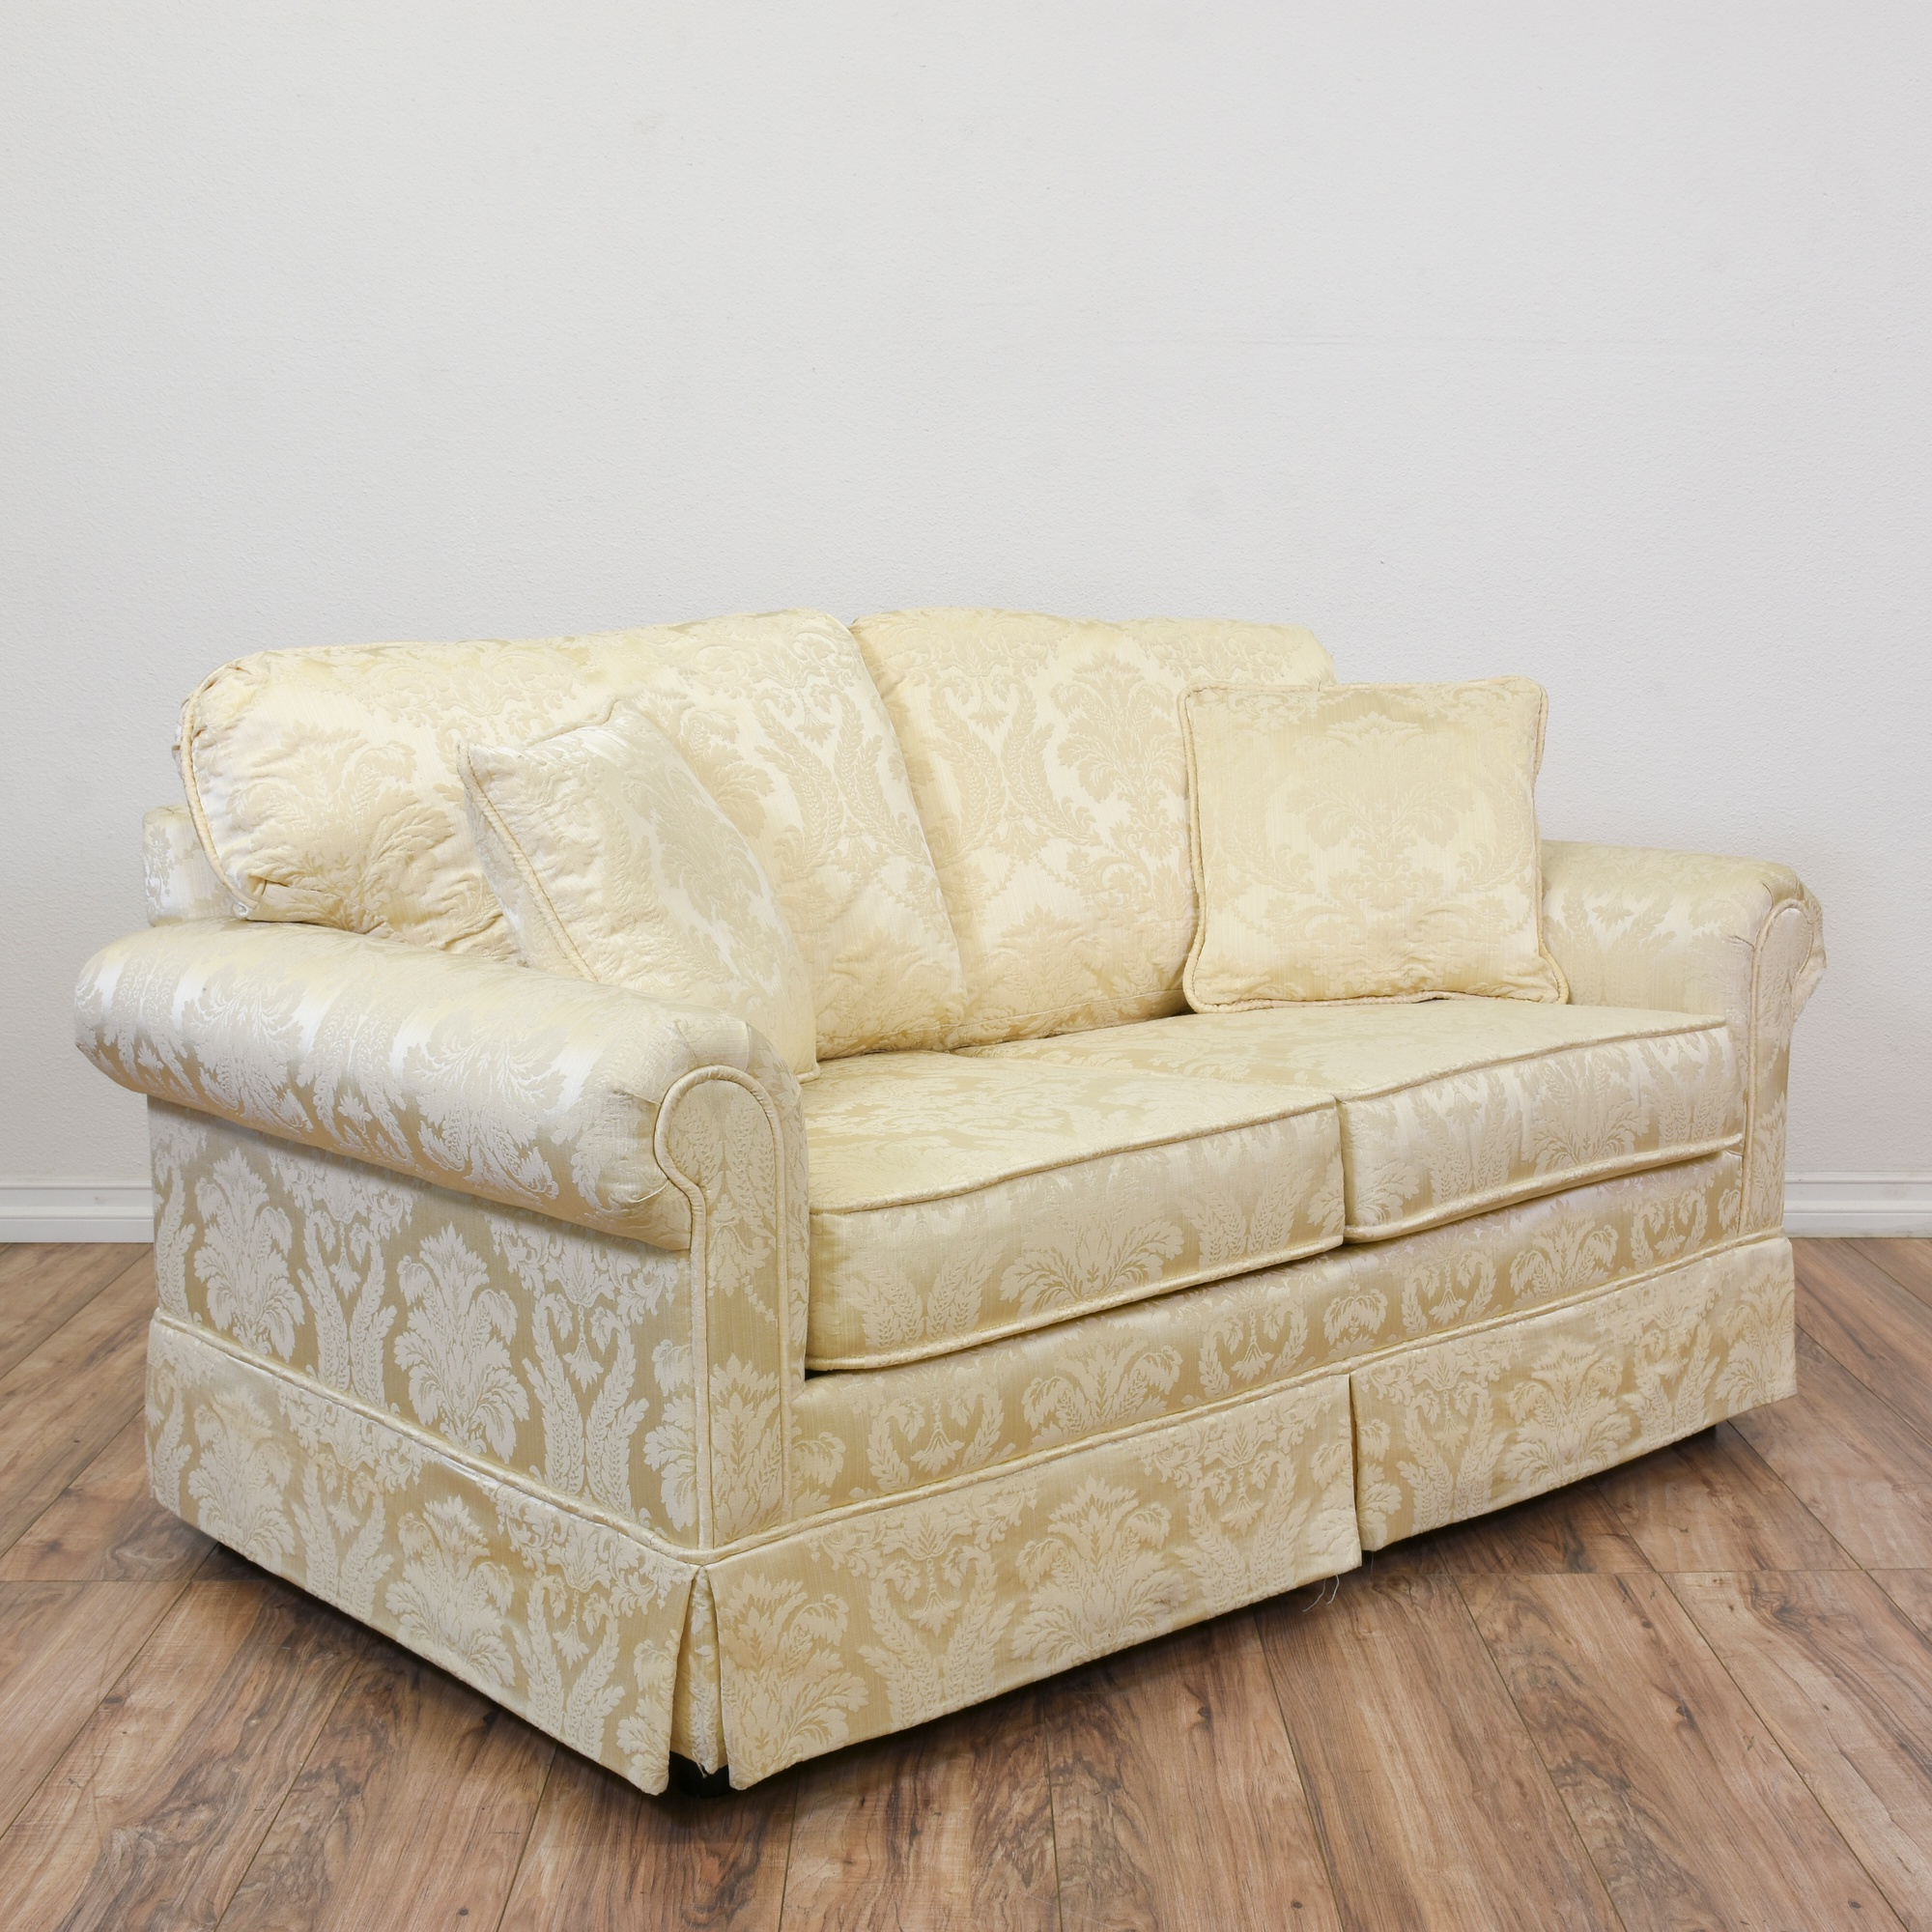 Krause 39 S Cream Floral Damask Loveseat Sofa Loveseat Vintage Furniture San Diego Los Angeles